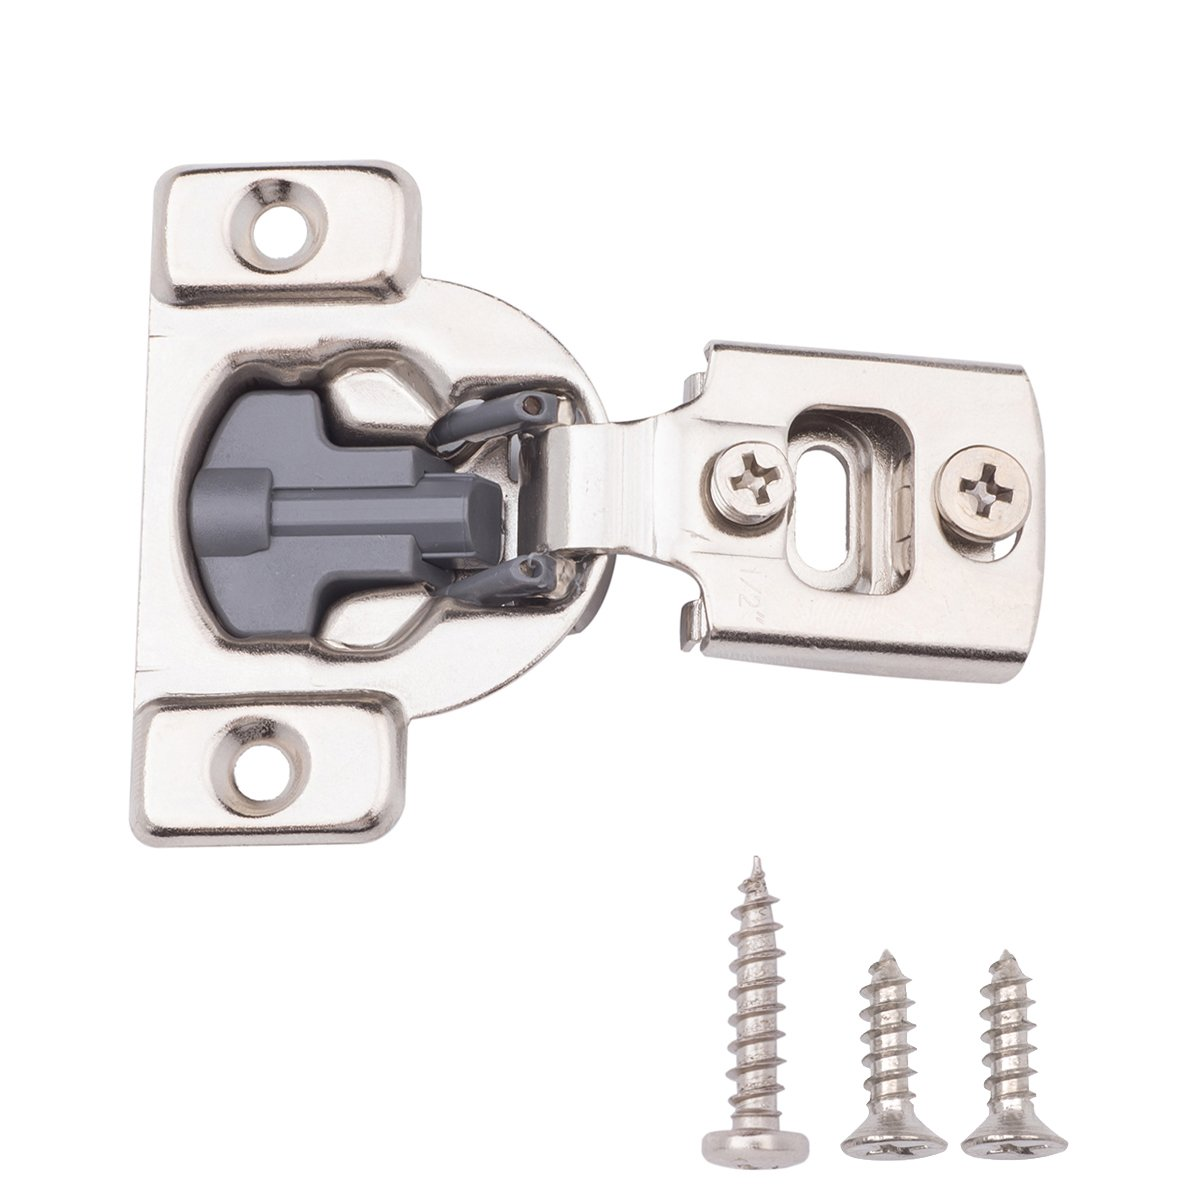 AmazonBasics Soft Close Hinge, 1/2 Inch Overlay, Nickel Plated, 50-Pack